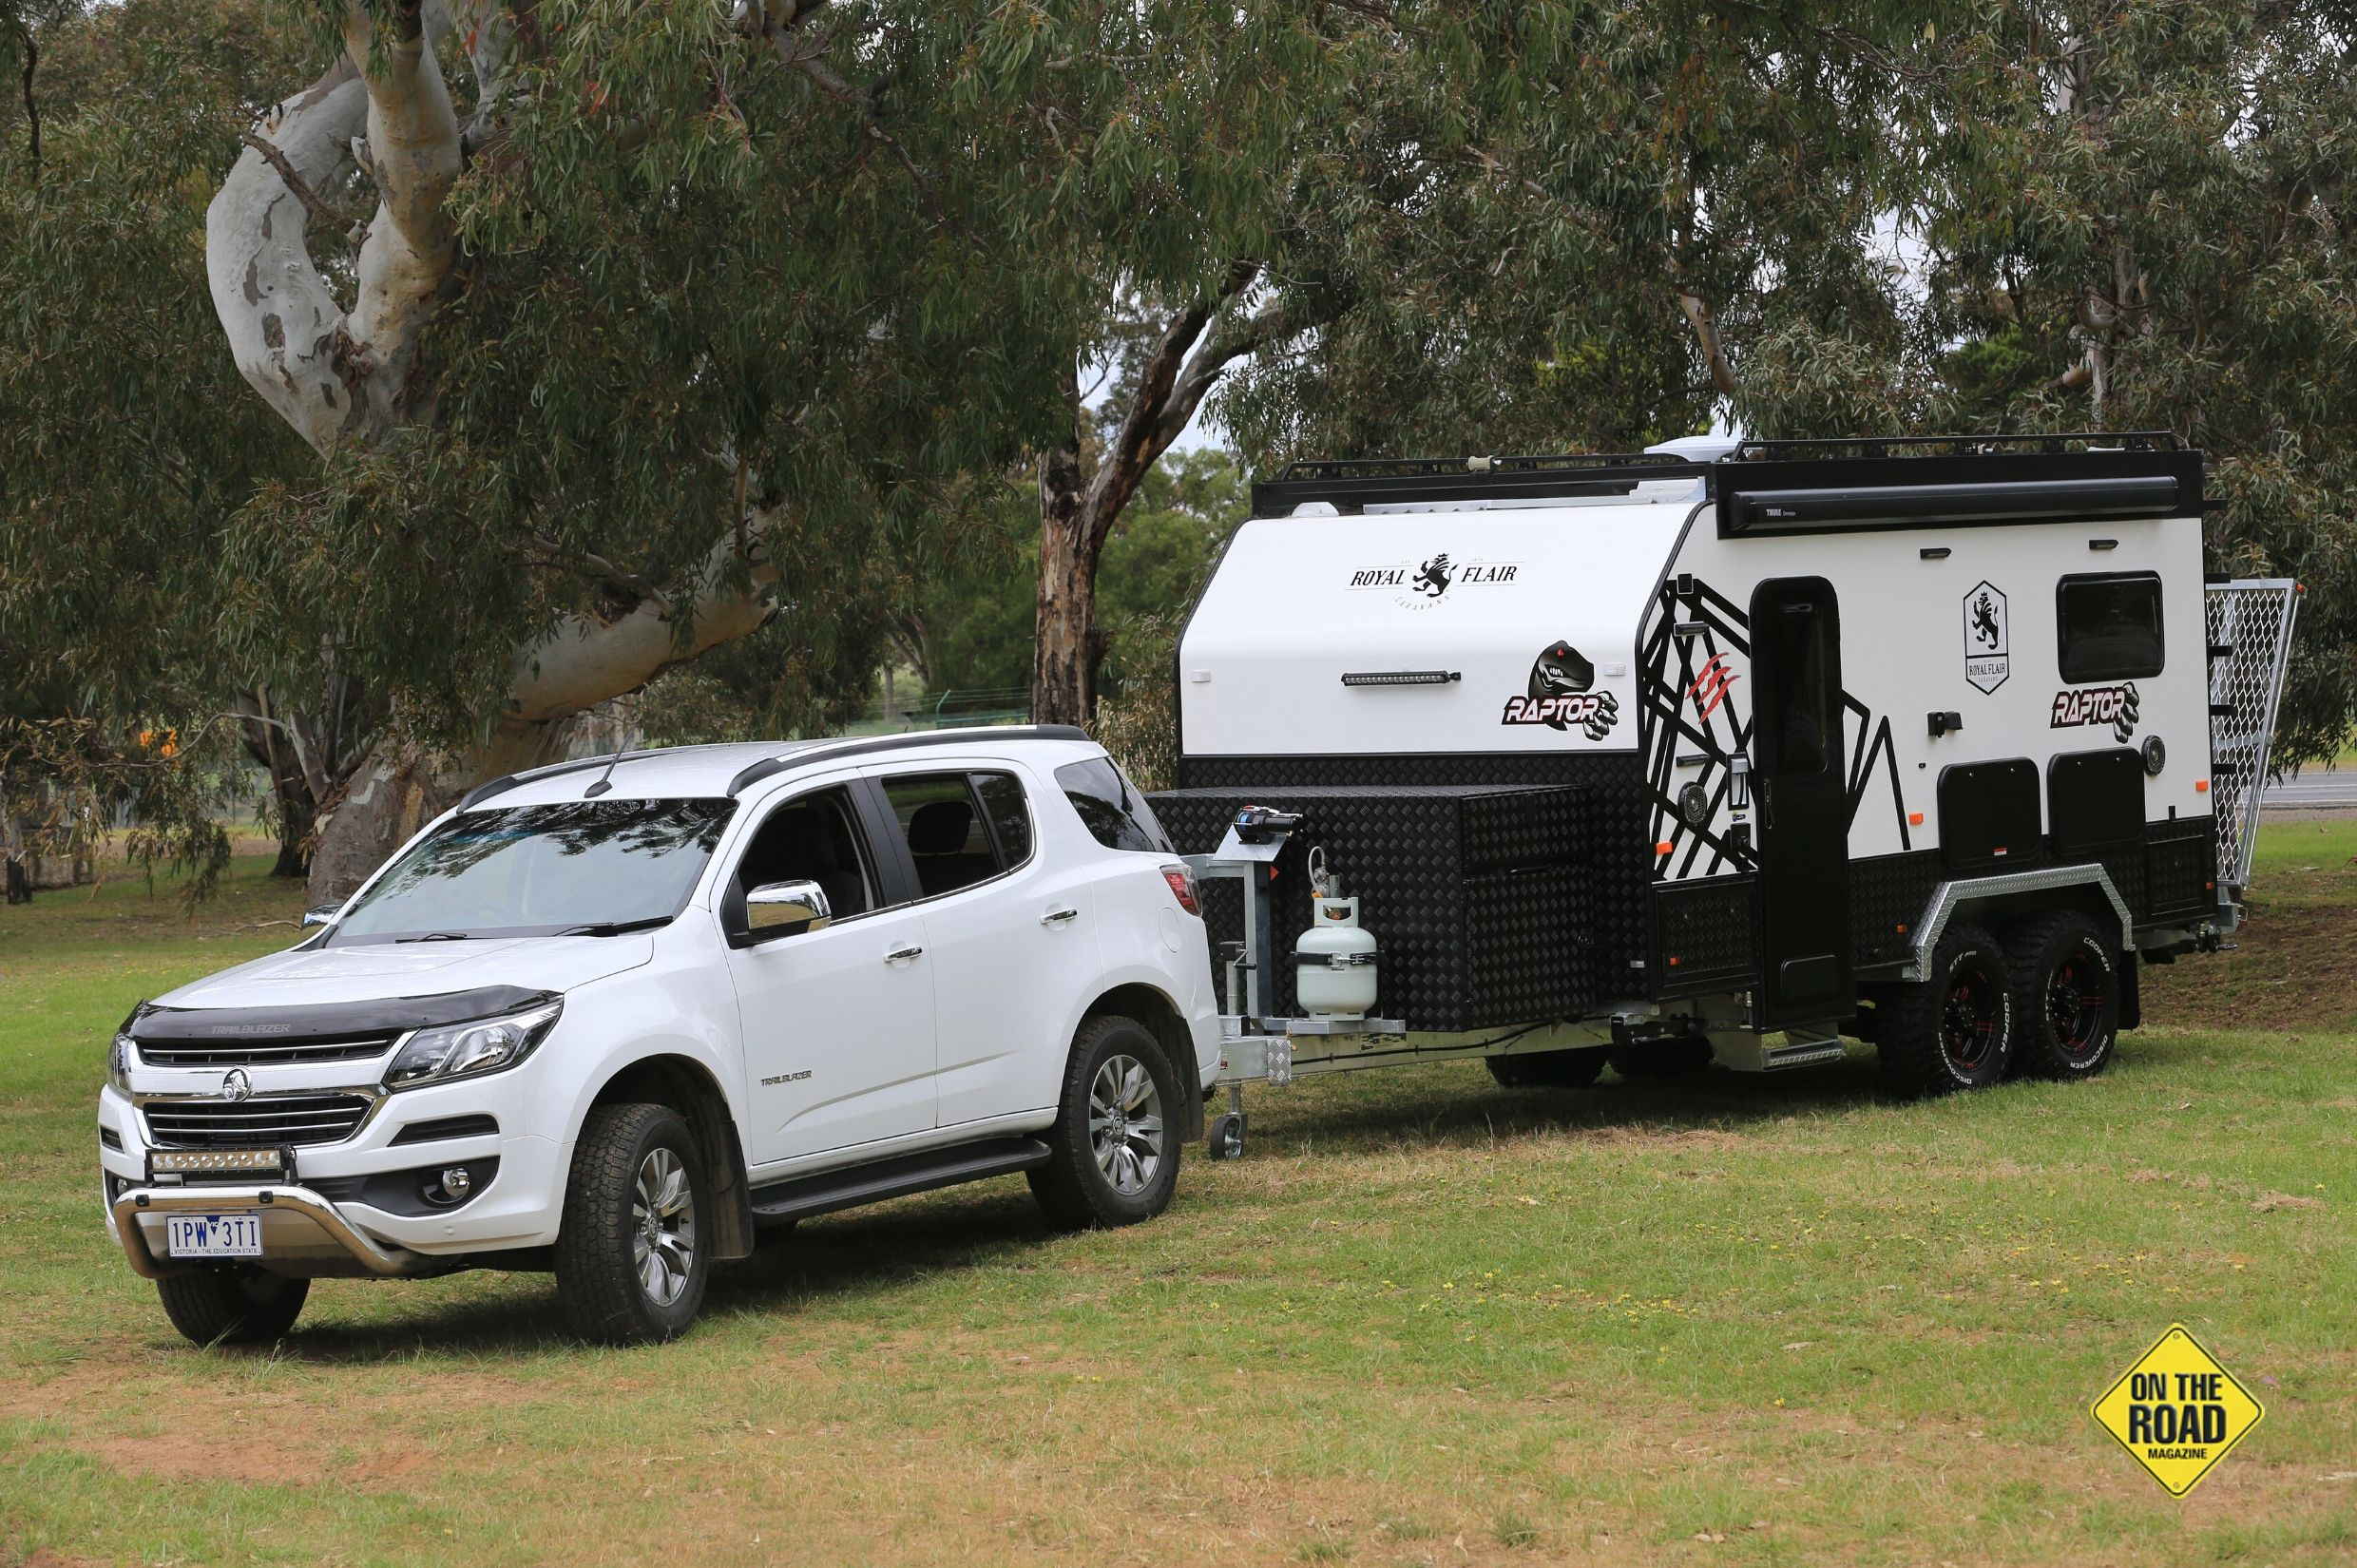 The Holden Trailblazer towed the Raptor with ease